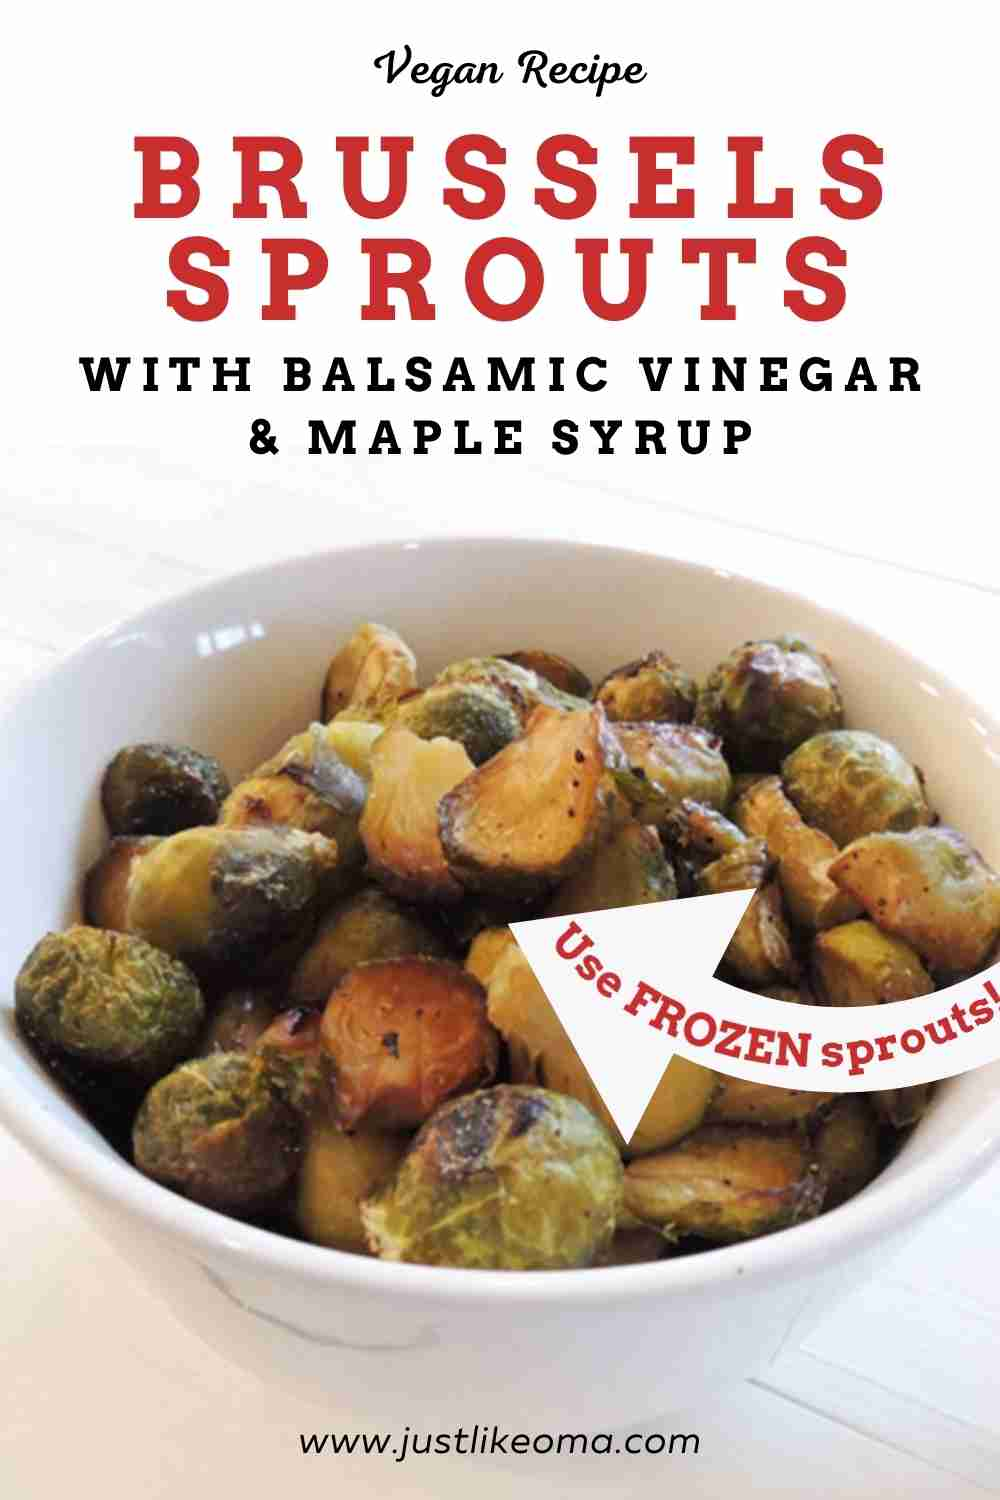 These roasted vegan Brussels sprouts with balsamic vinegar and maple syrup are so quick and easy to prepare, yet so delicious!